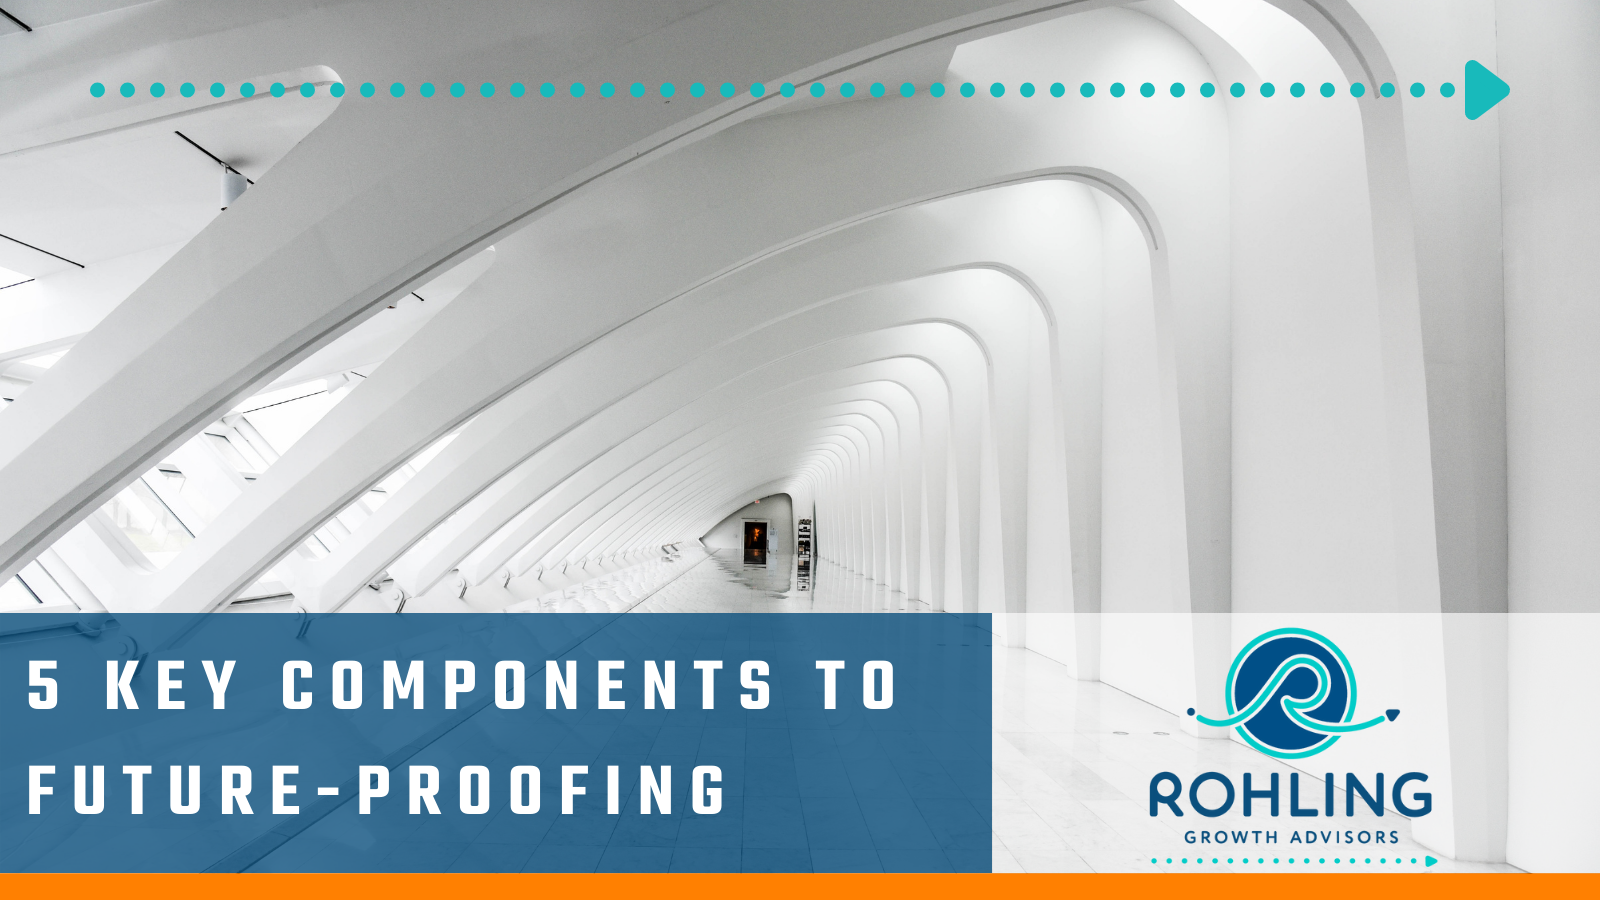 Rohling Growth Advisors, 5 Key Components to Future-Proofing